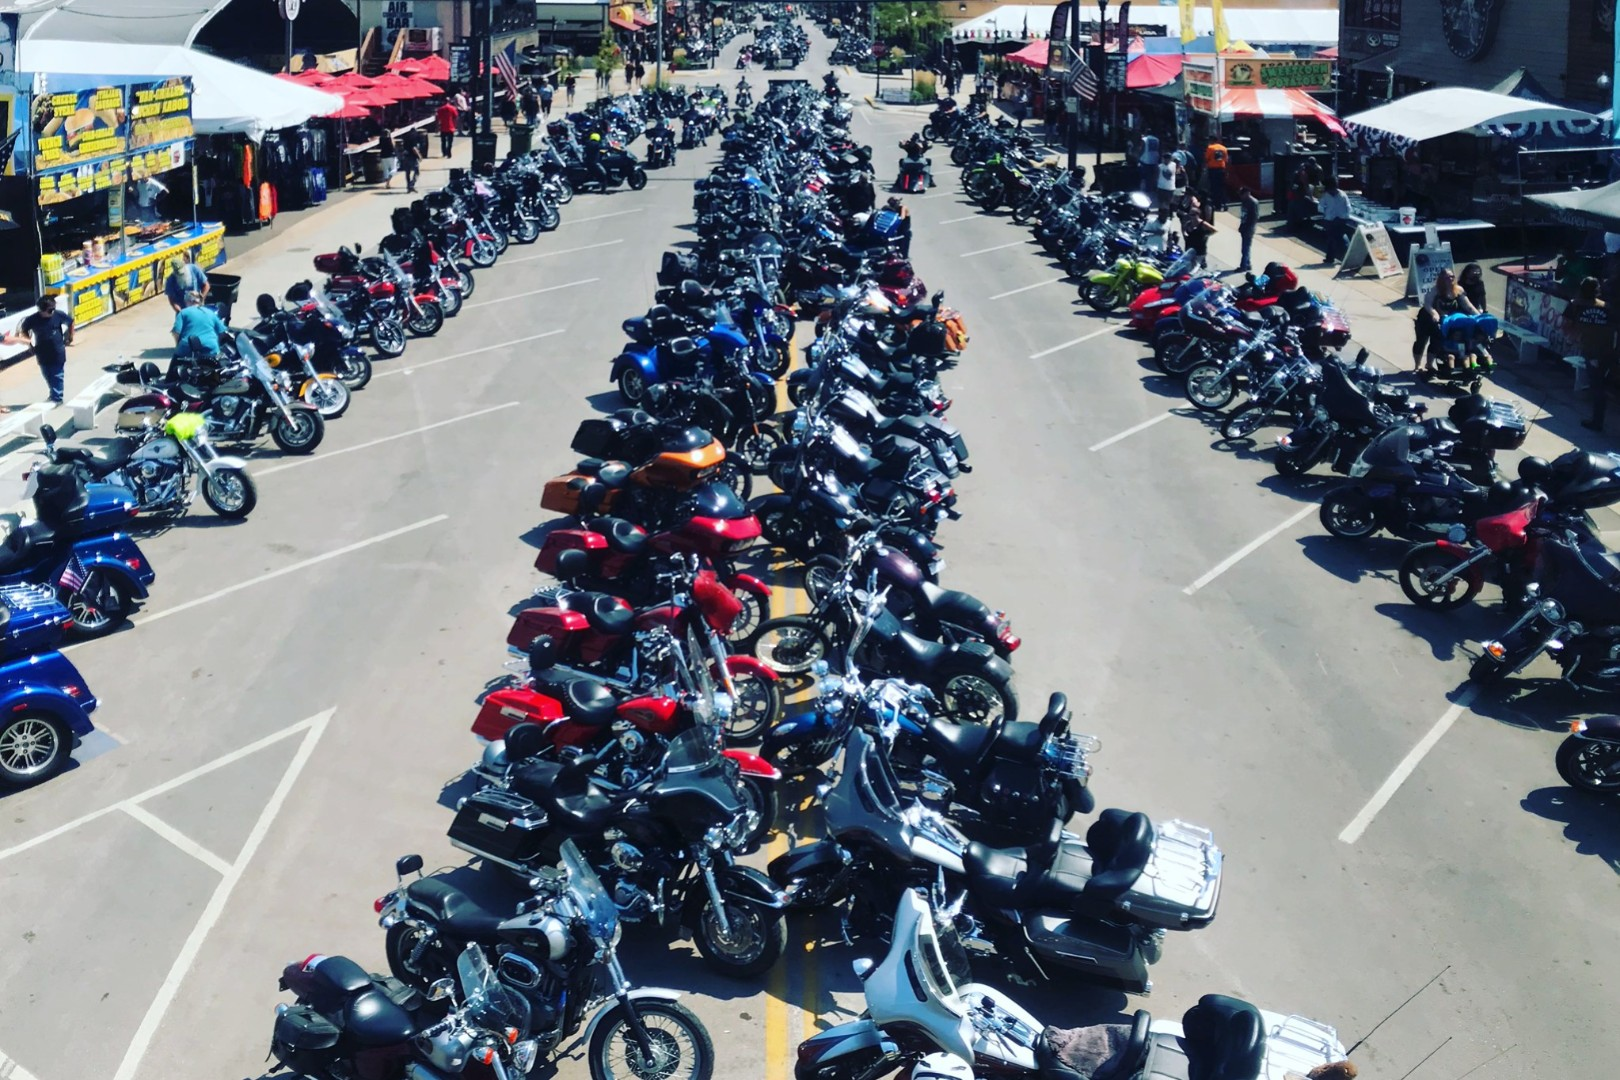 Sturgis City Council Supports 2020 Sturgis Motorcycle Rally by Vote